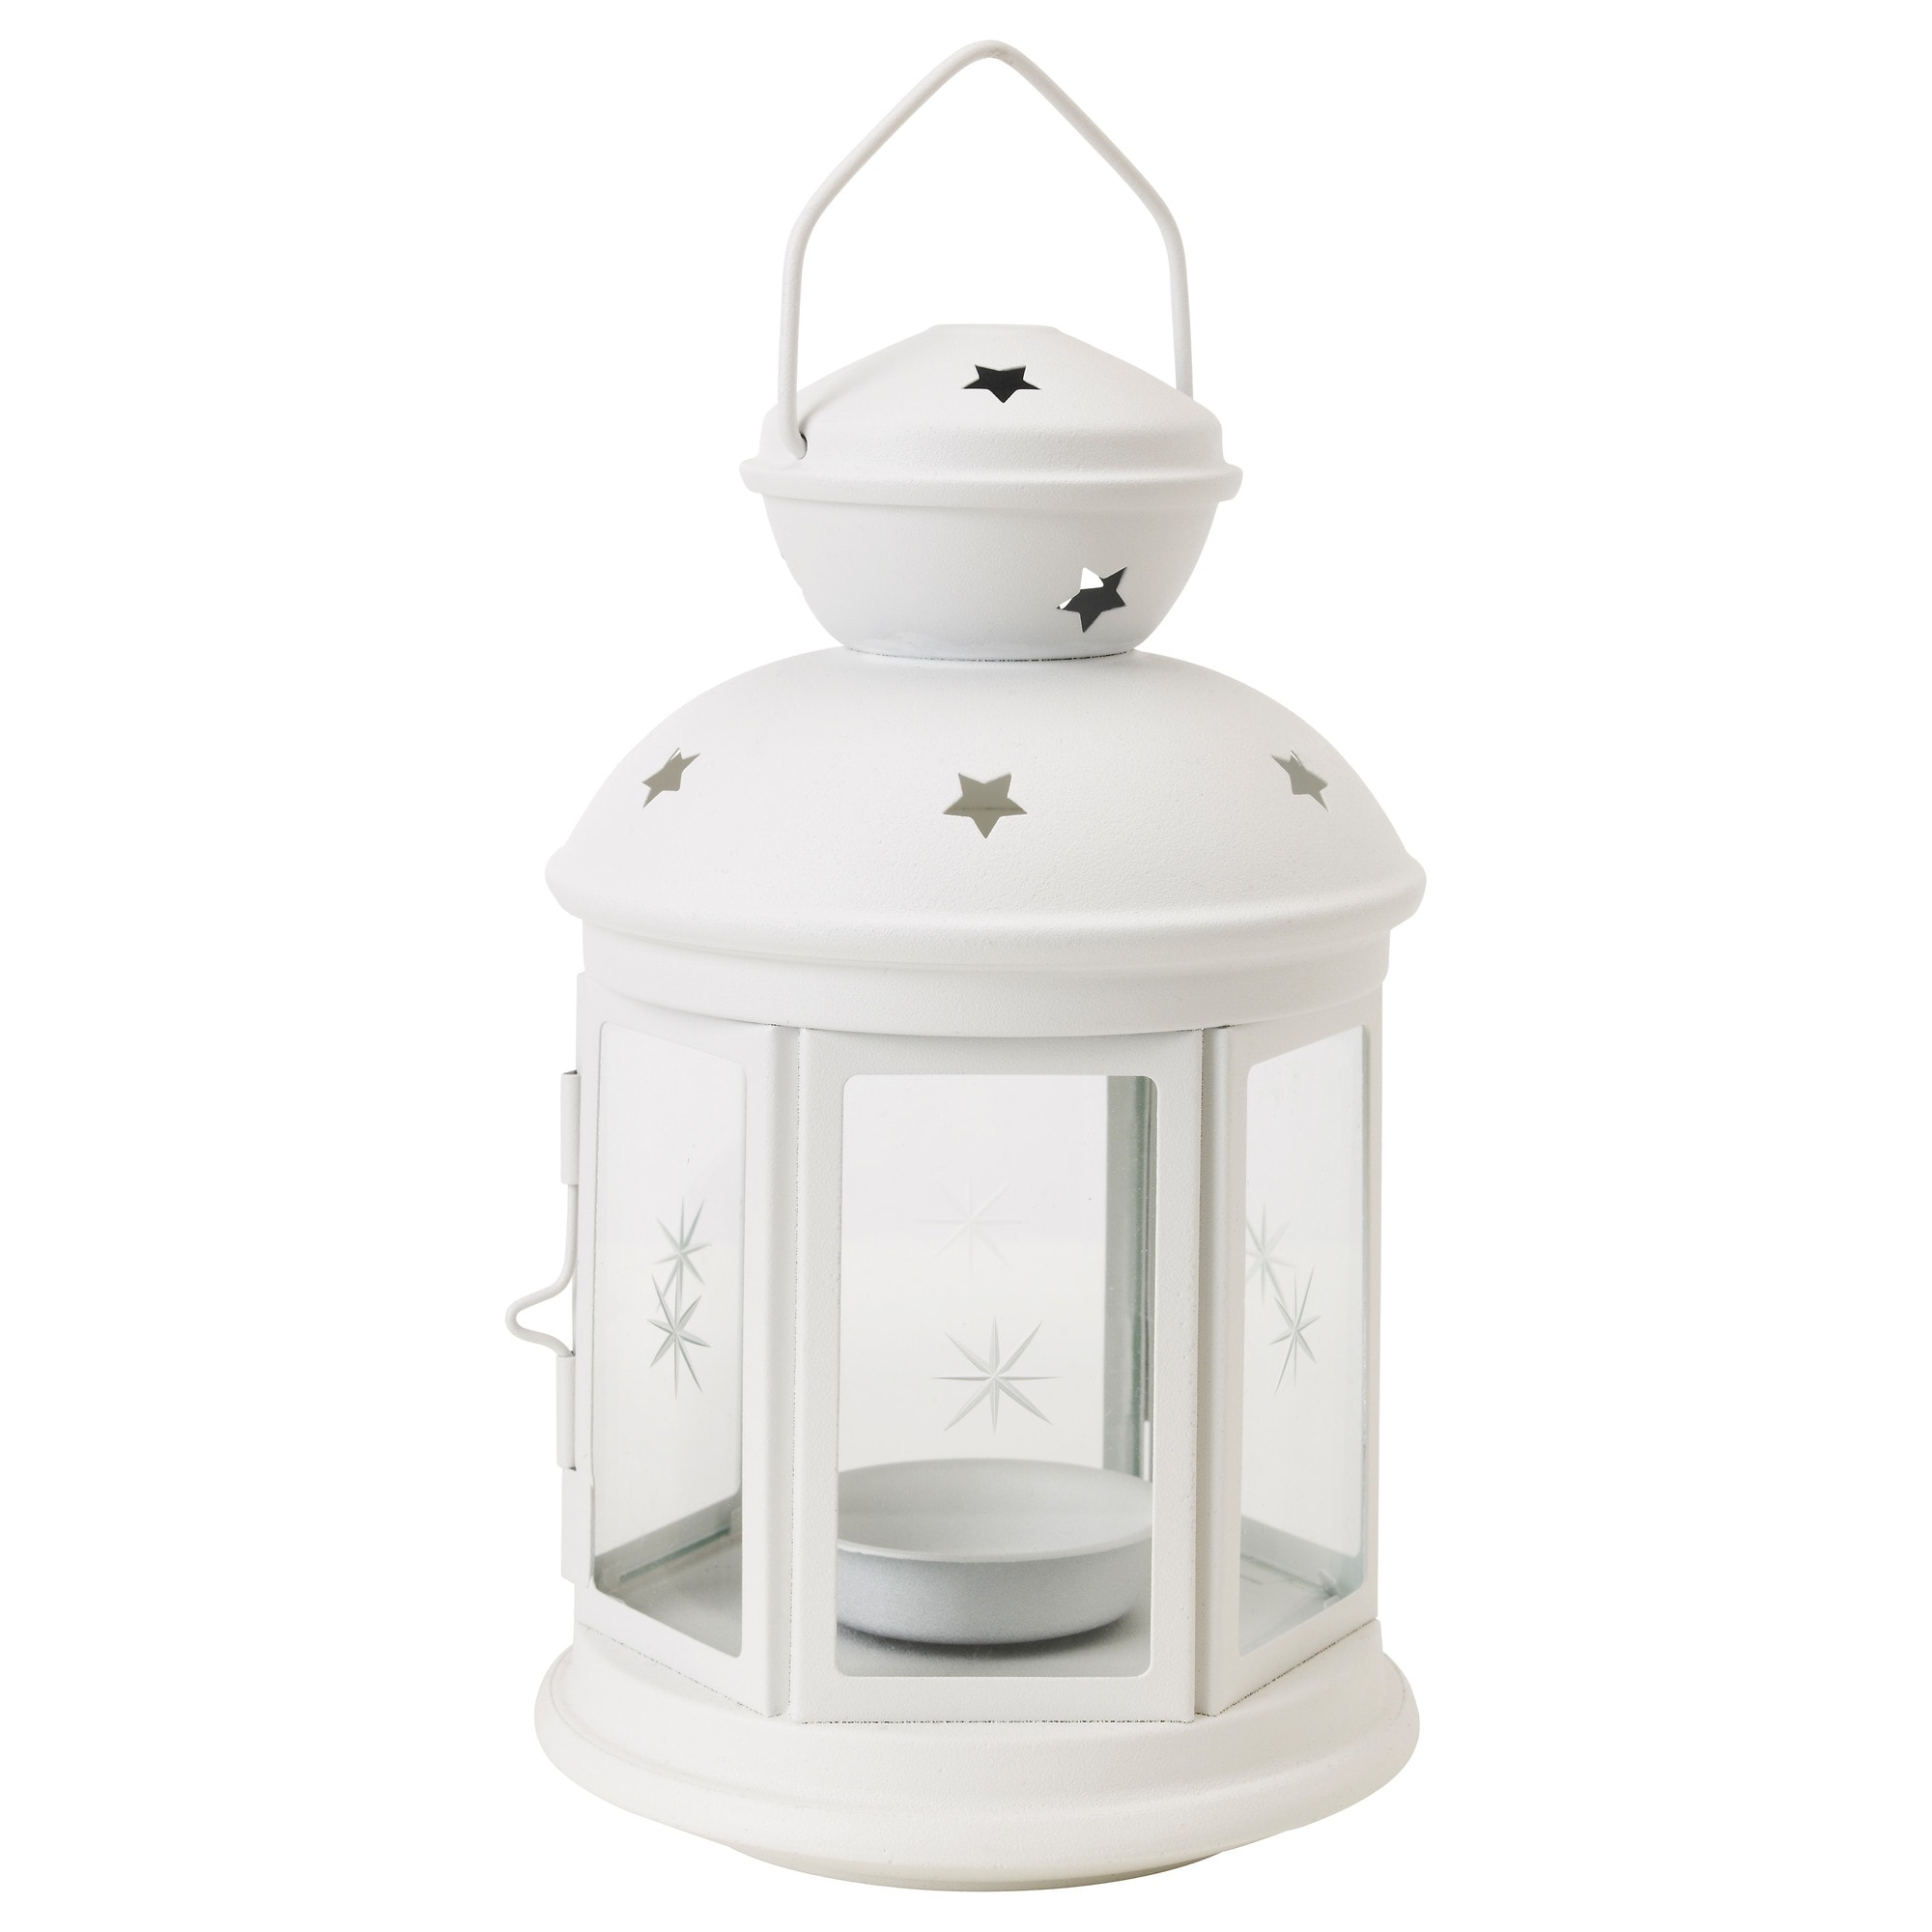 Rotera Lantern For Tealight - Ikea with Outdoor Tea Light Lanterns (Image 13 of 20)